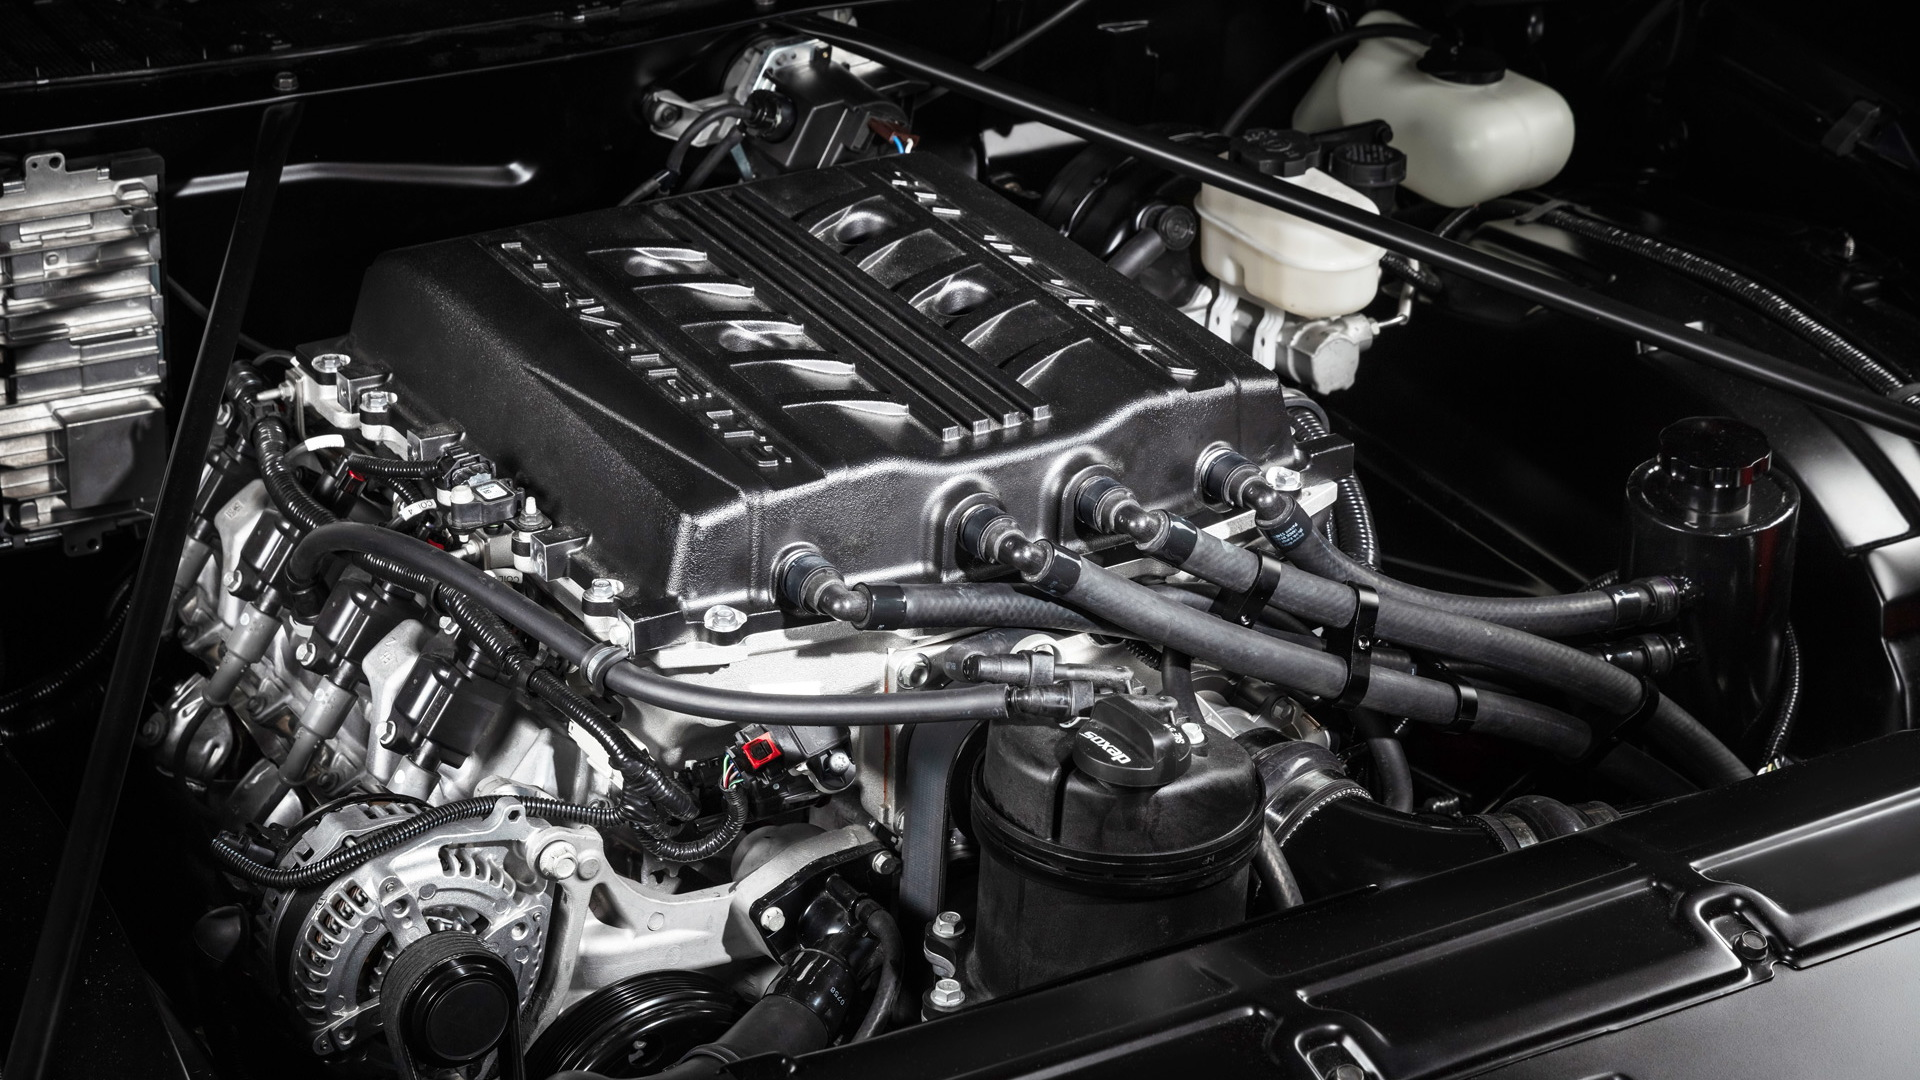 LT5 6.2-liter supercharged V-8 crate engine